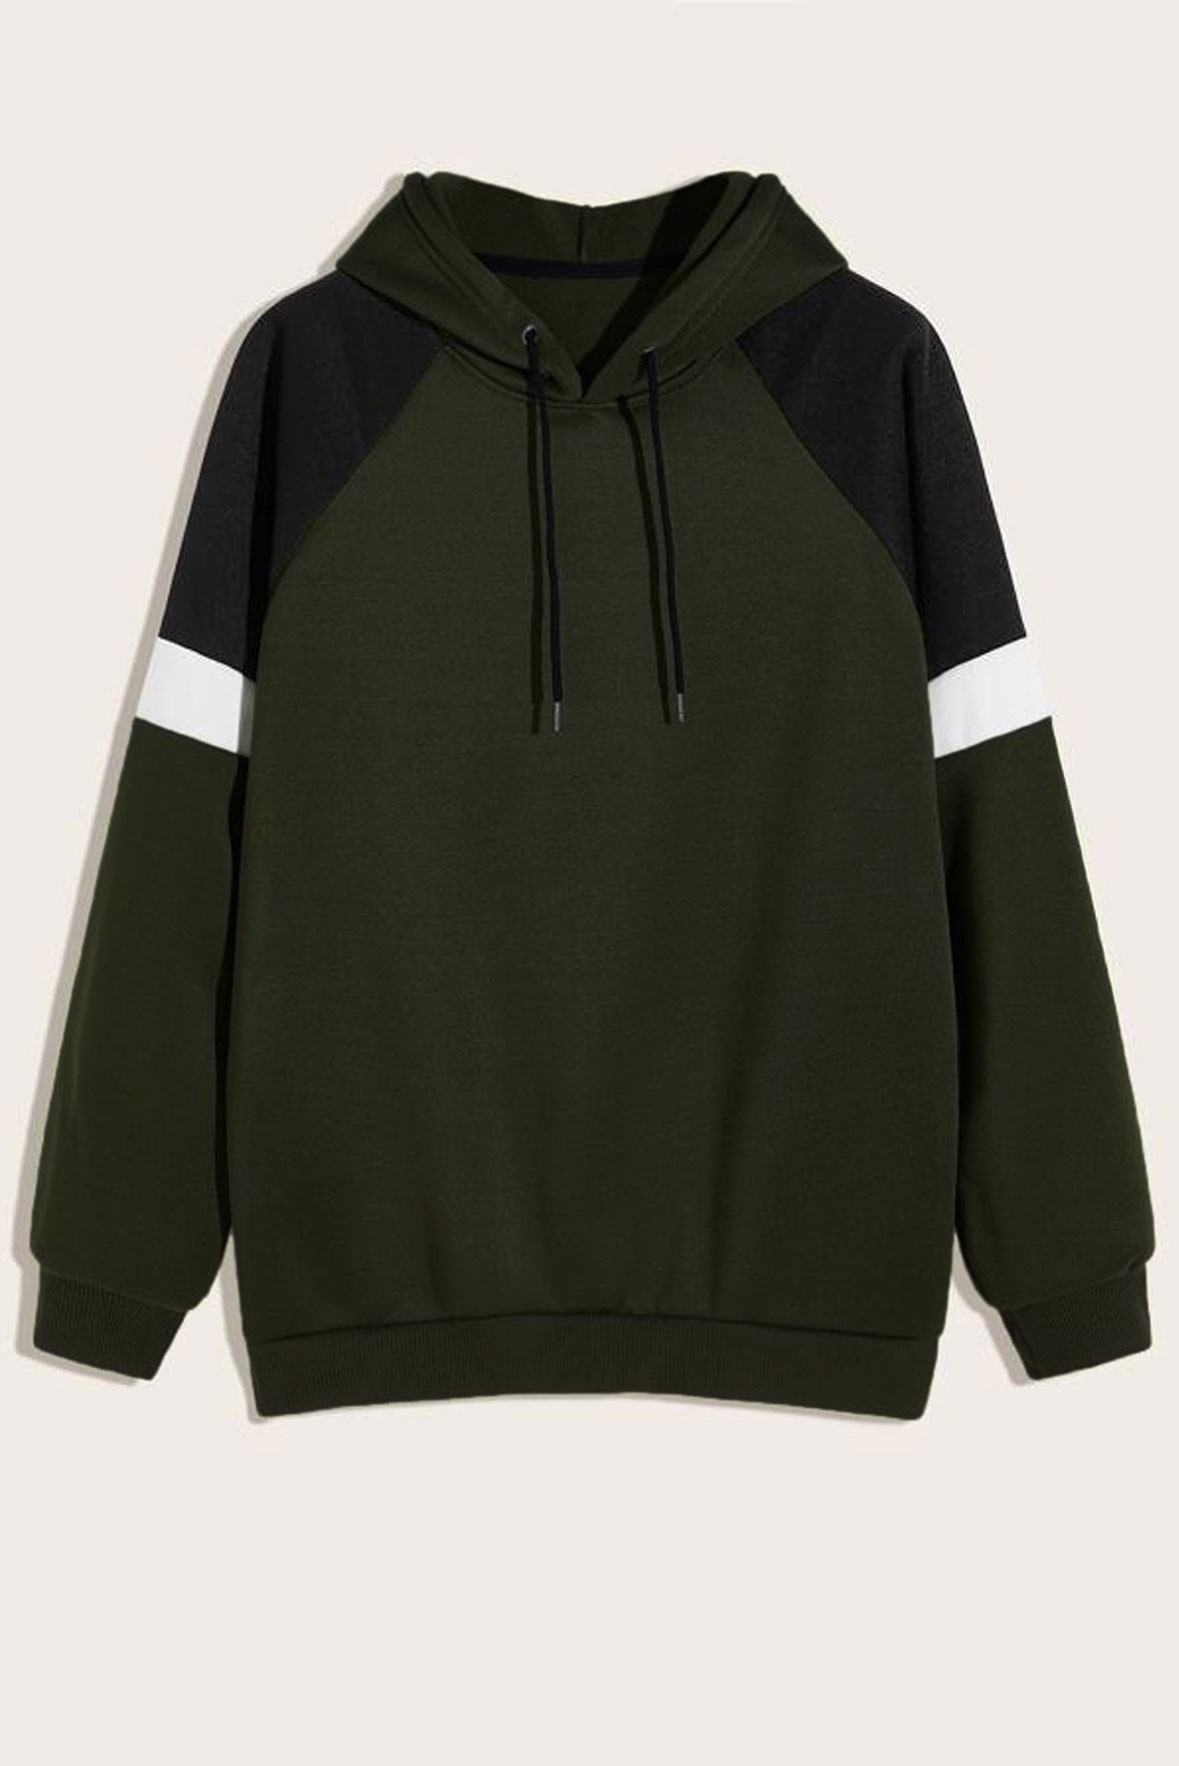 Women's Black green and white Hoodie